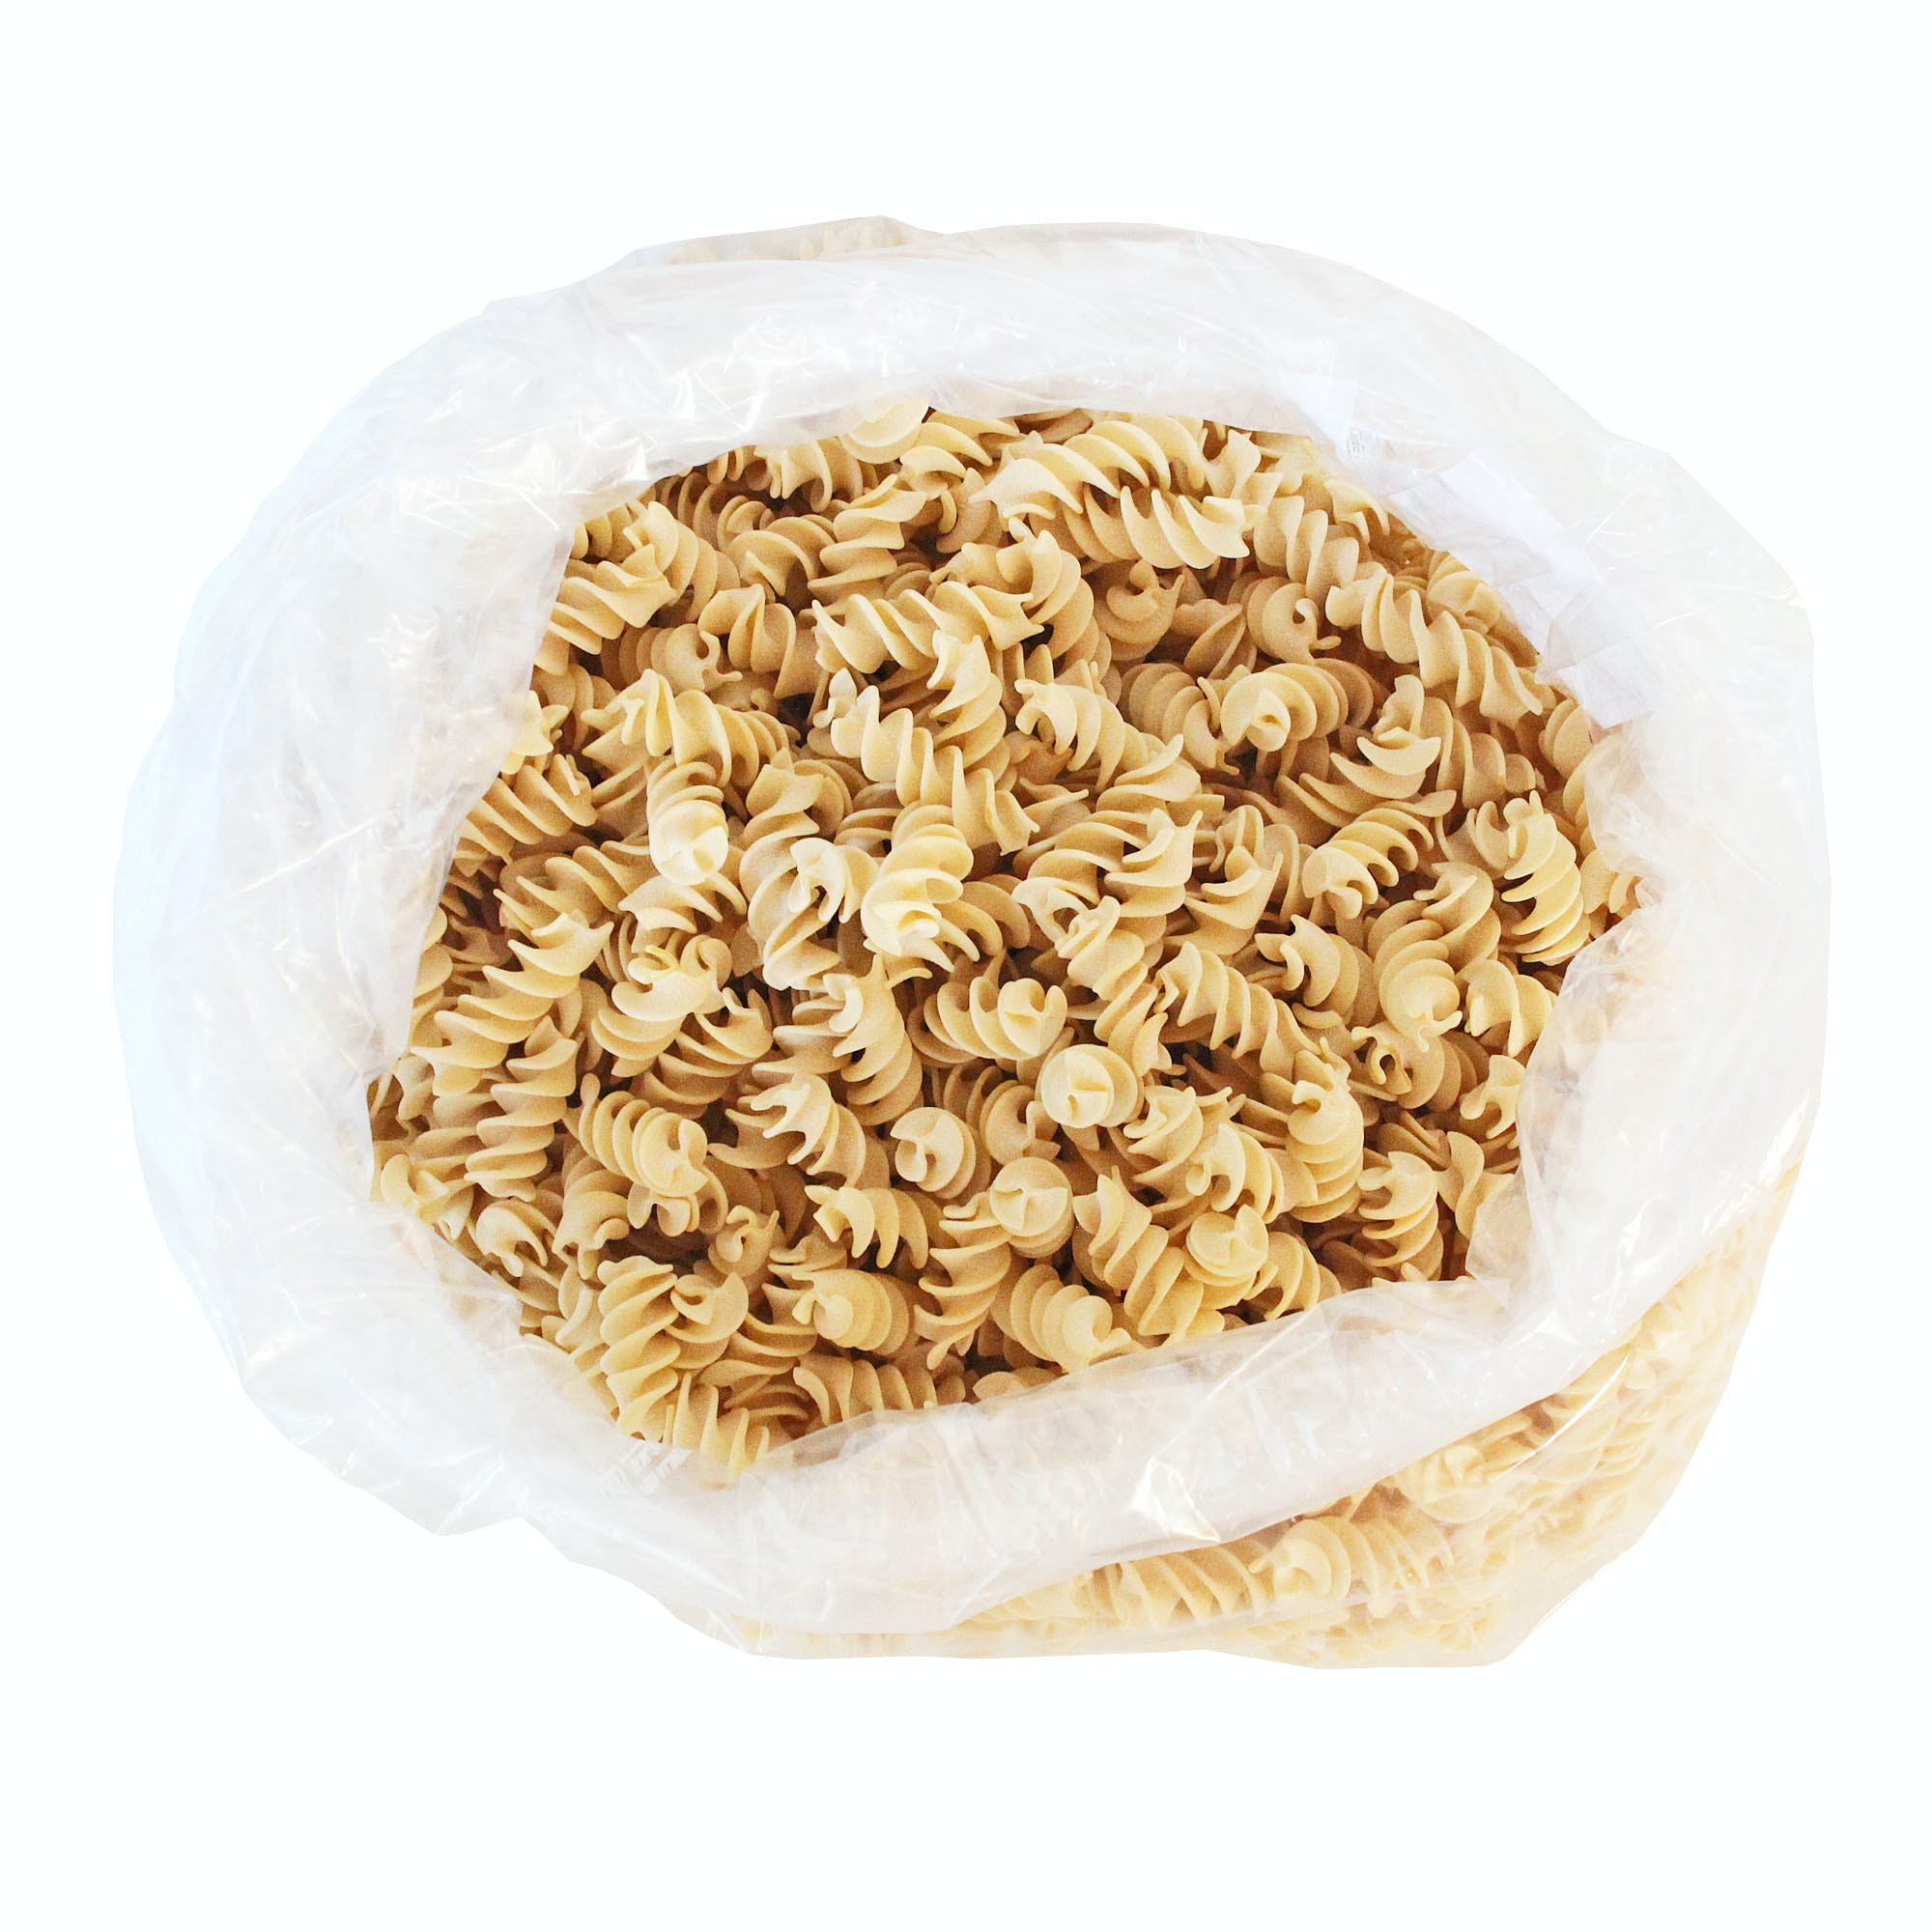 Fusilloni White Bulk Pasta Pasta sold by M5 Corporation